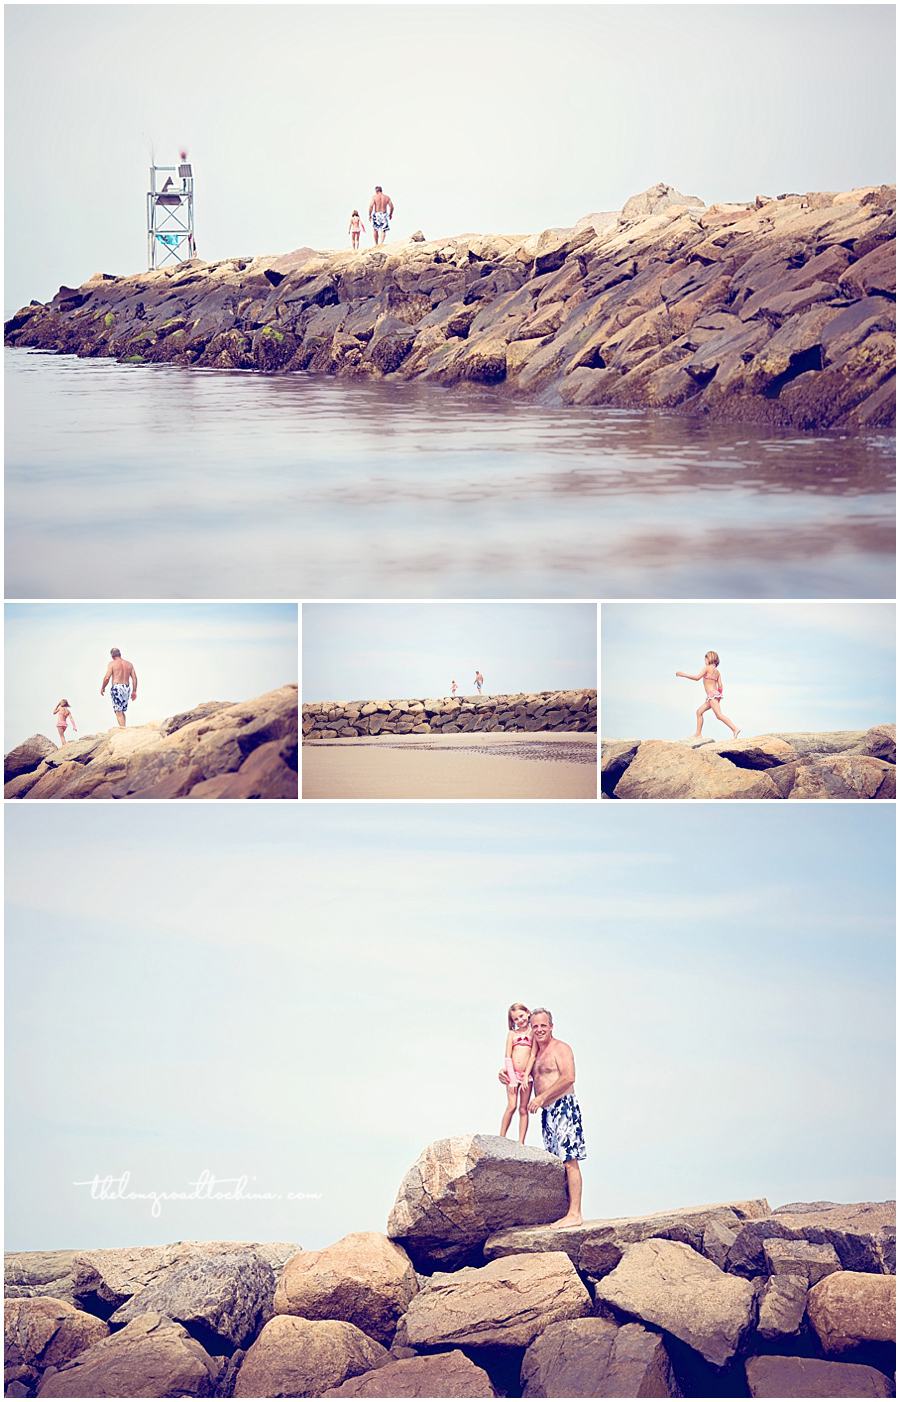 Hopping Rocks on the Jetty Collage 1